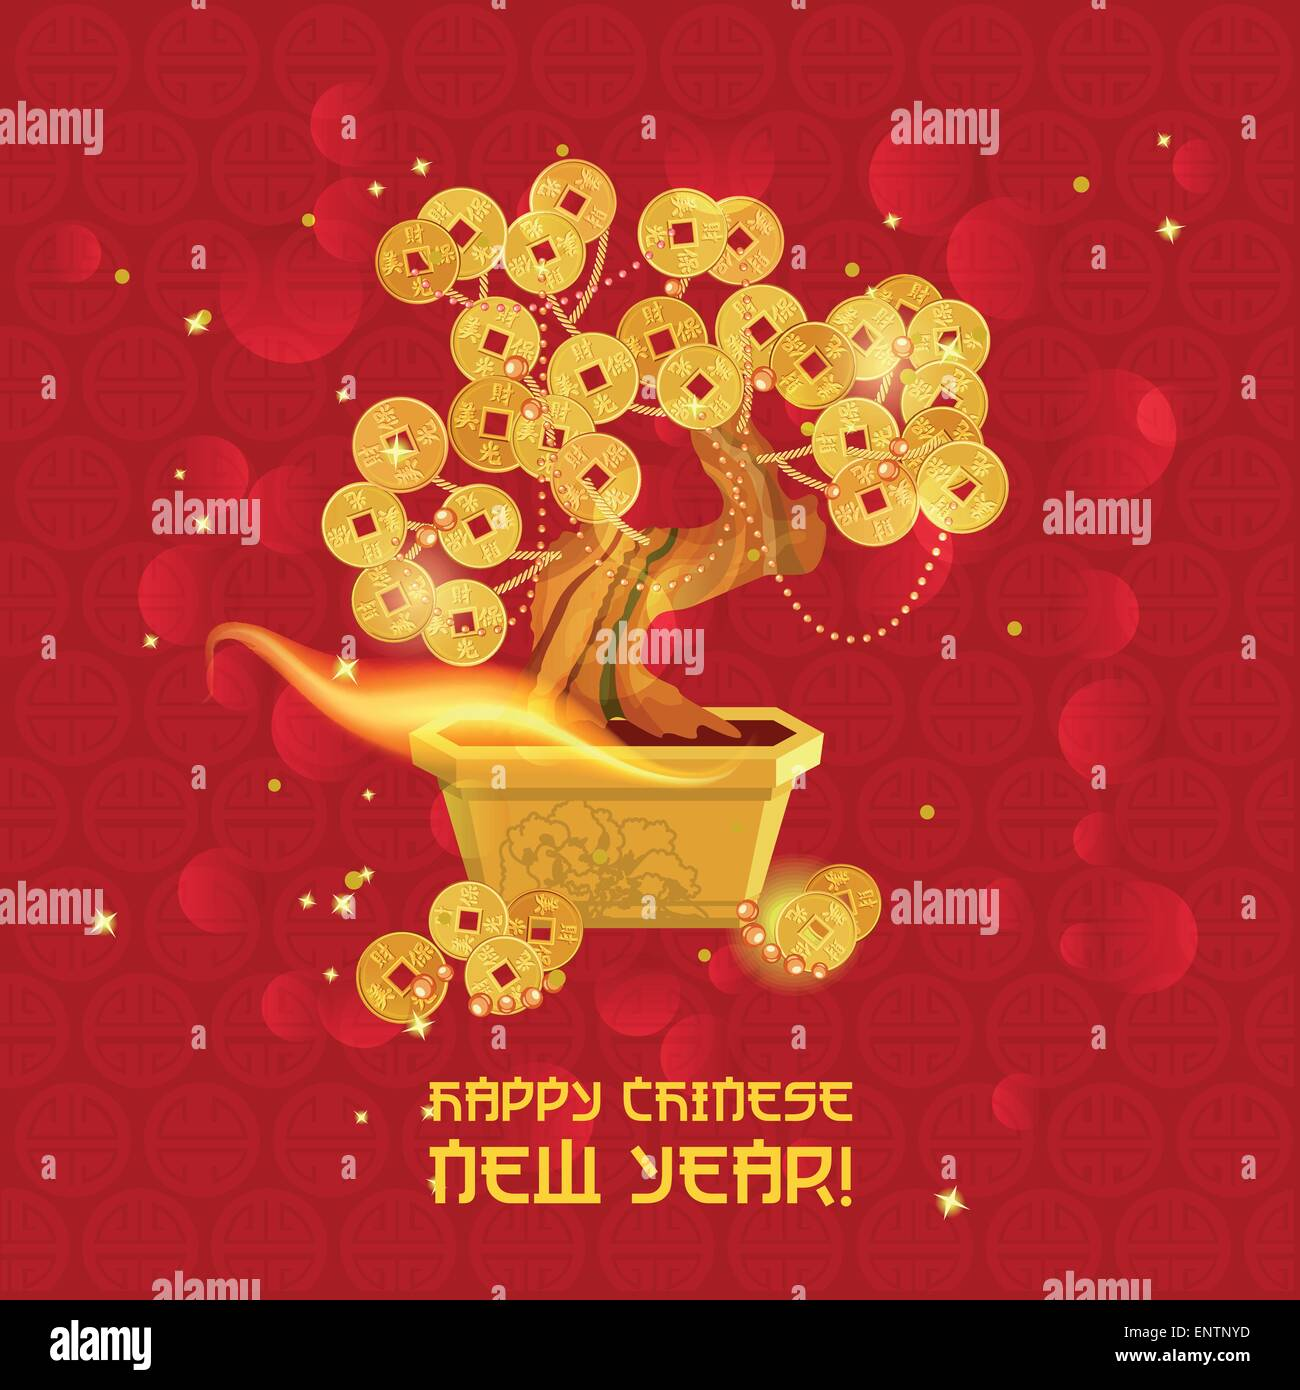 Chinese New Year Traditional Greetings Image Collections Greetings